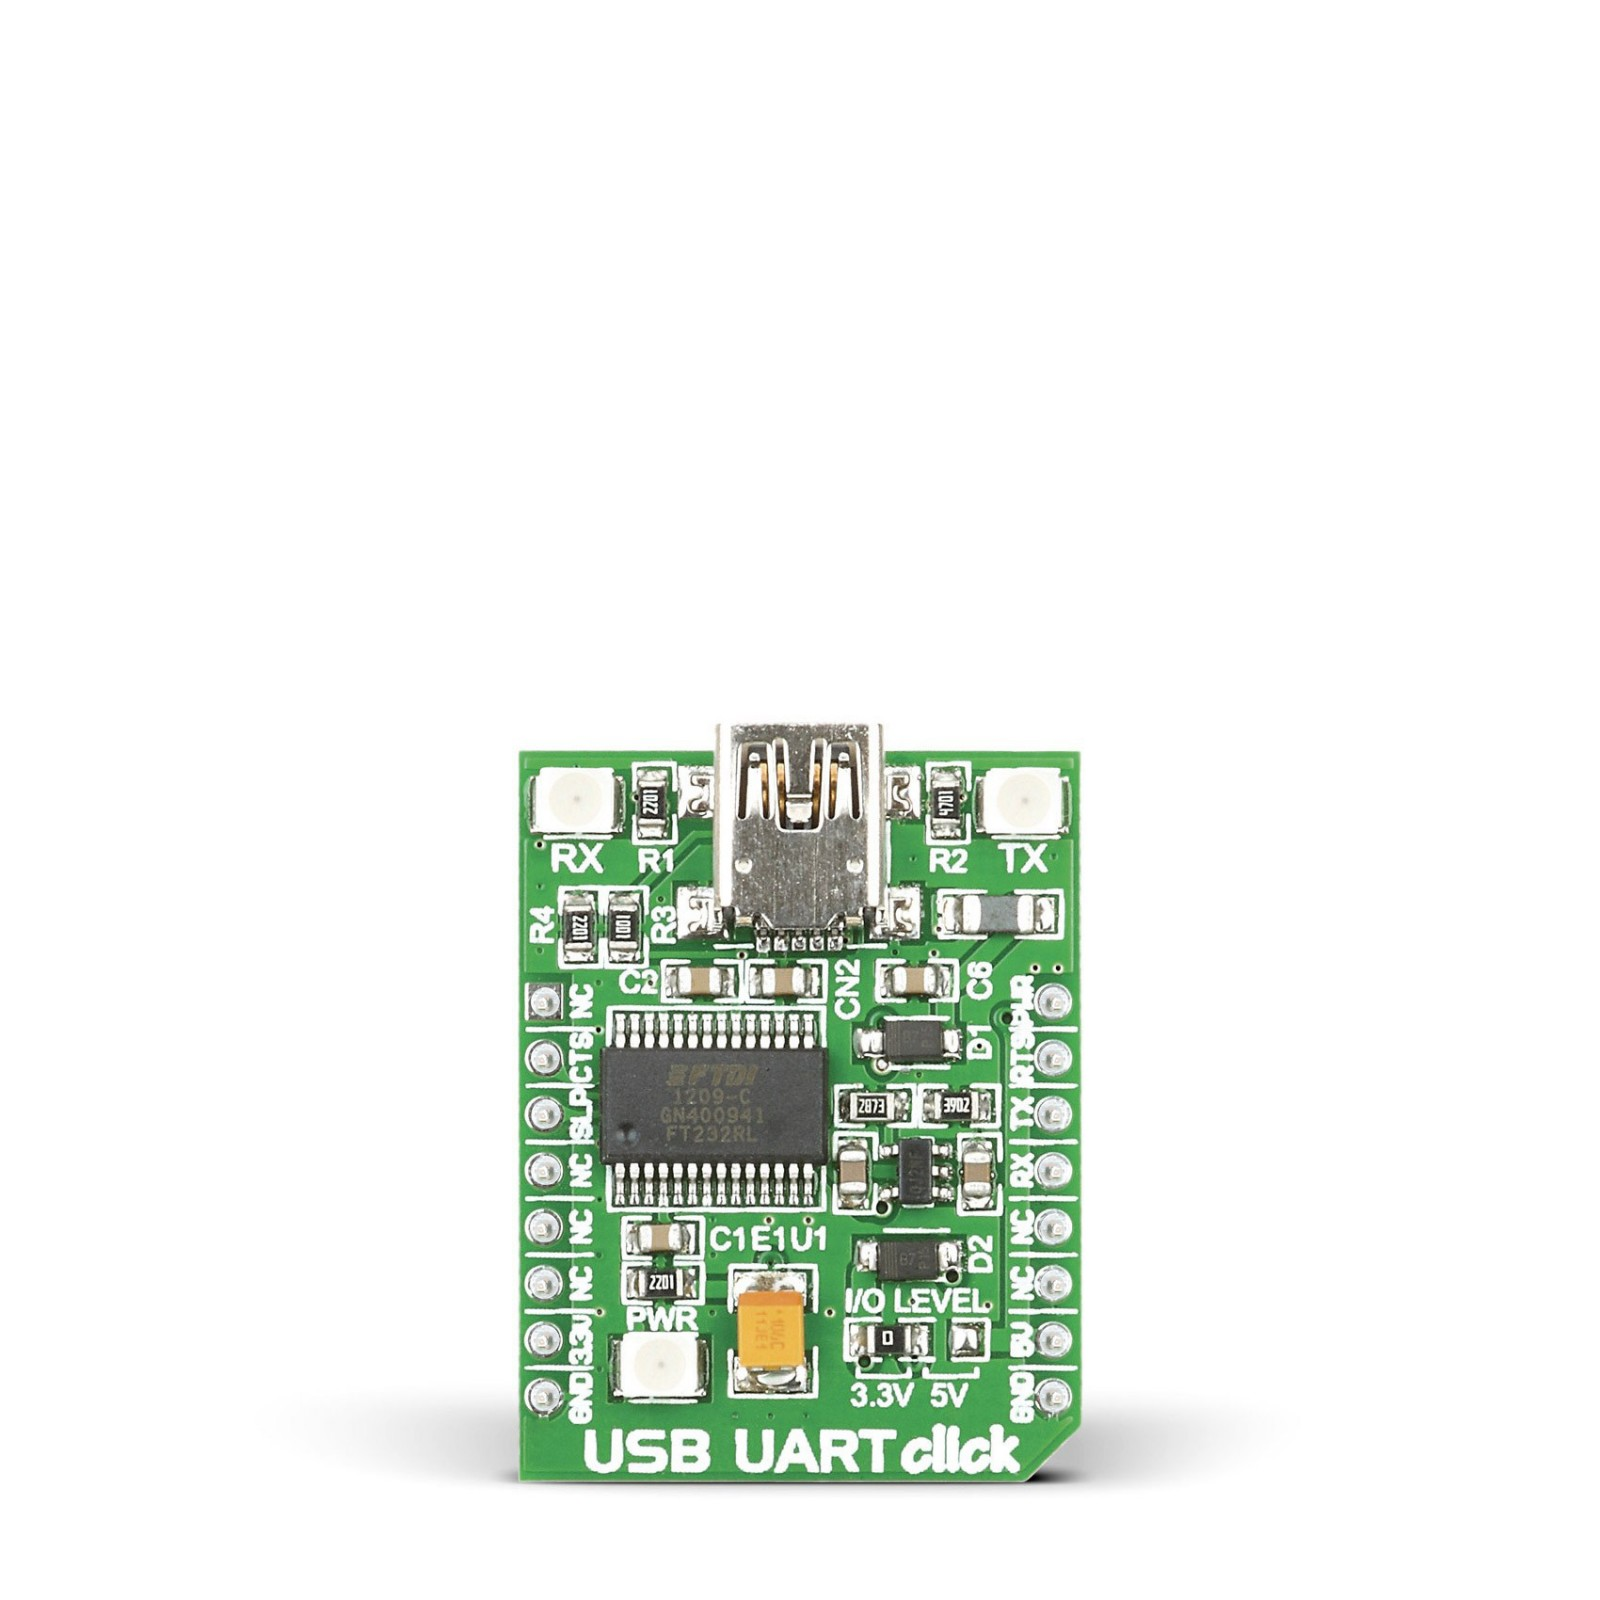 USB UART click - Breakout board for FT232RL chip